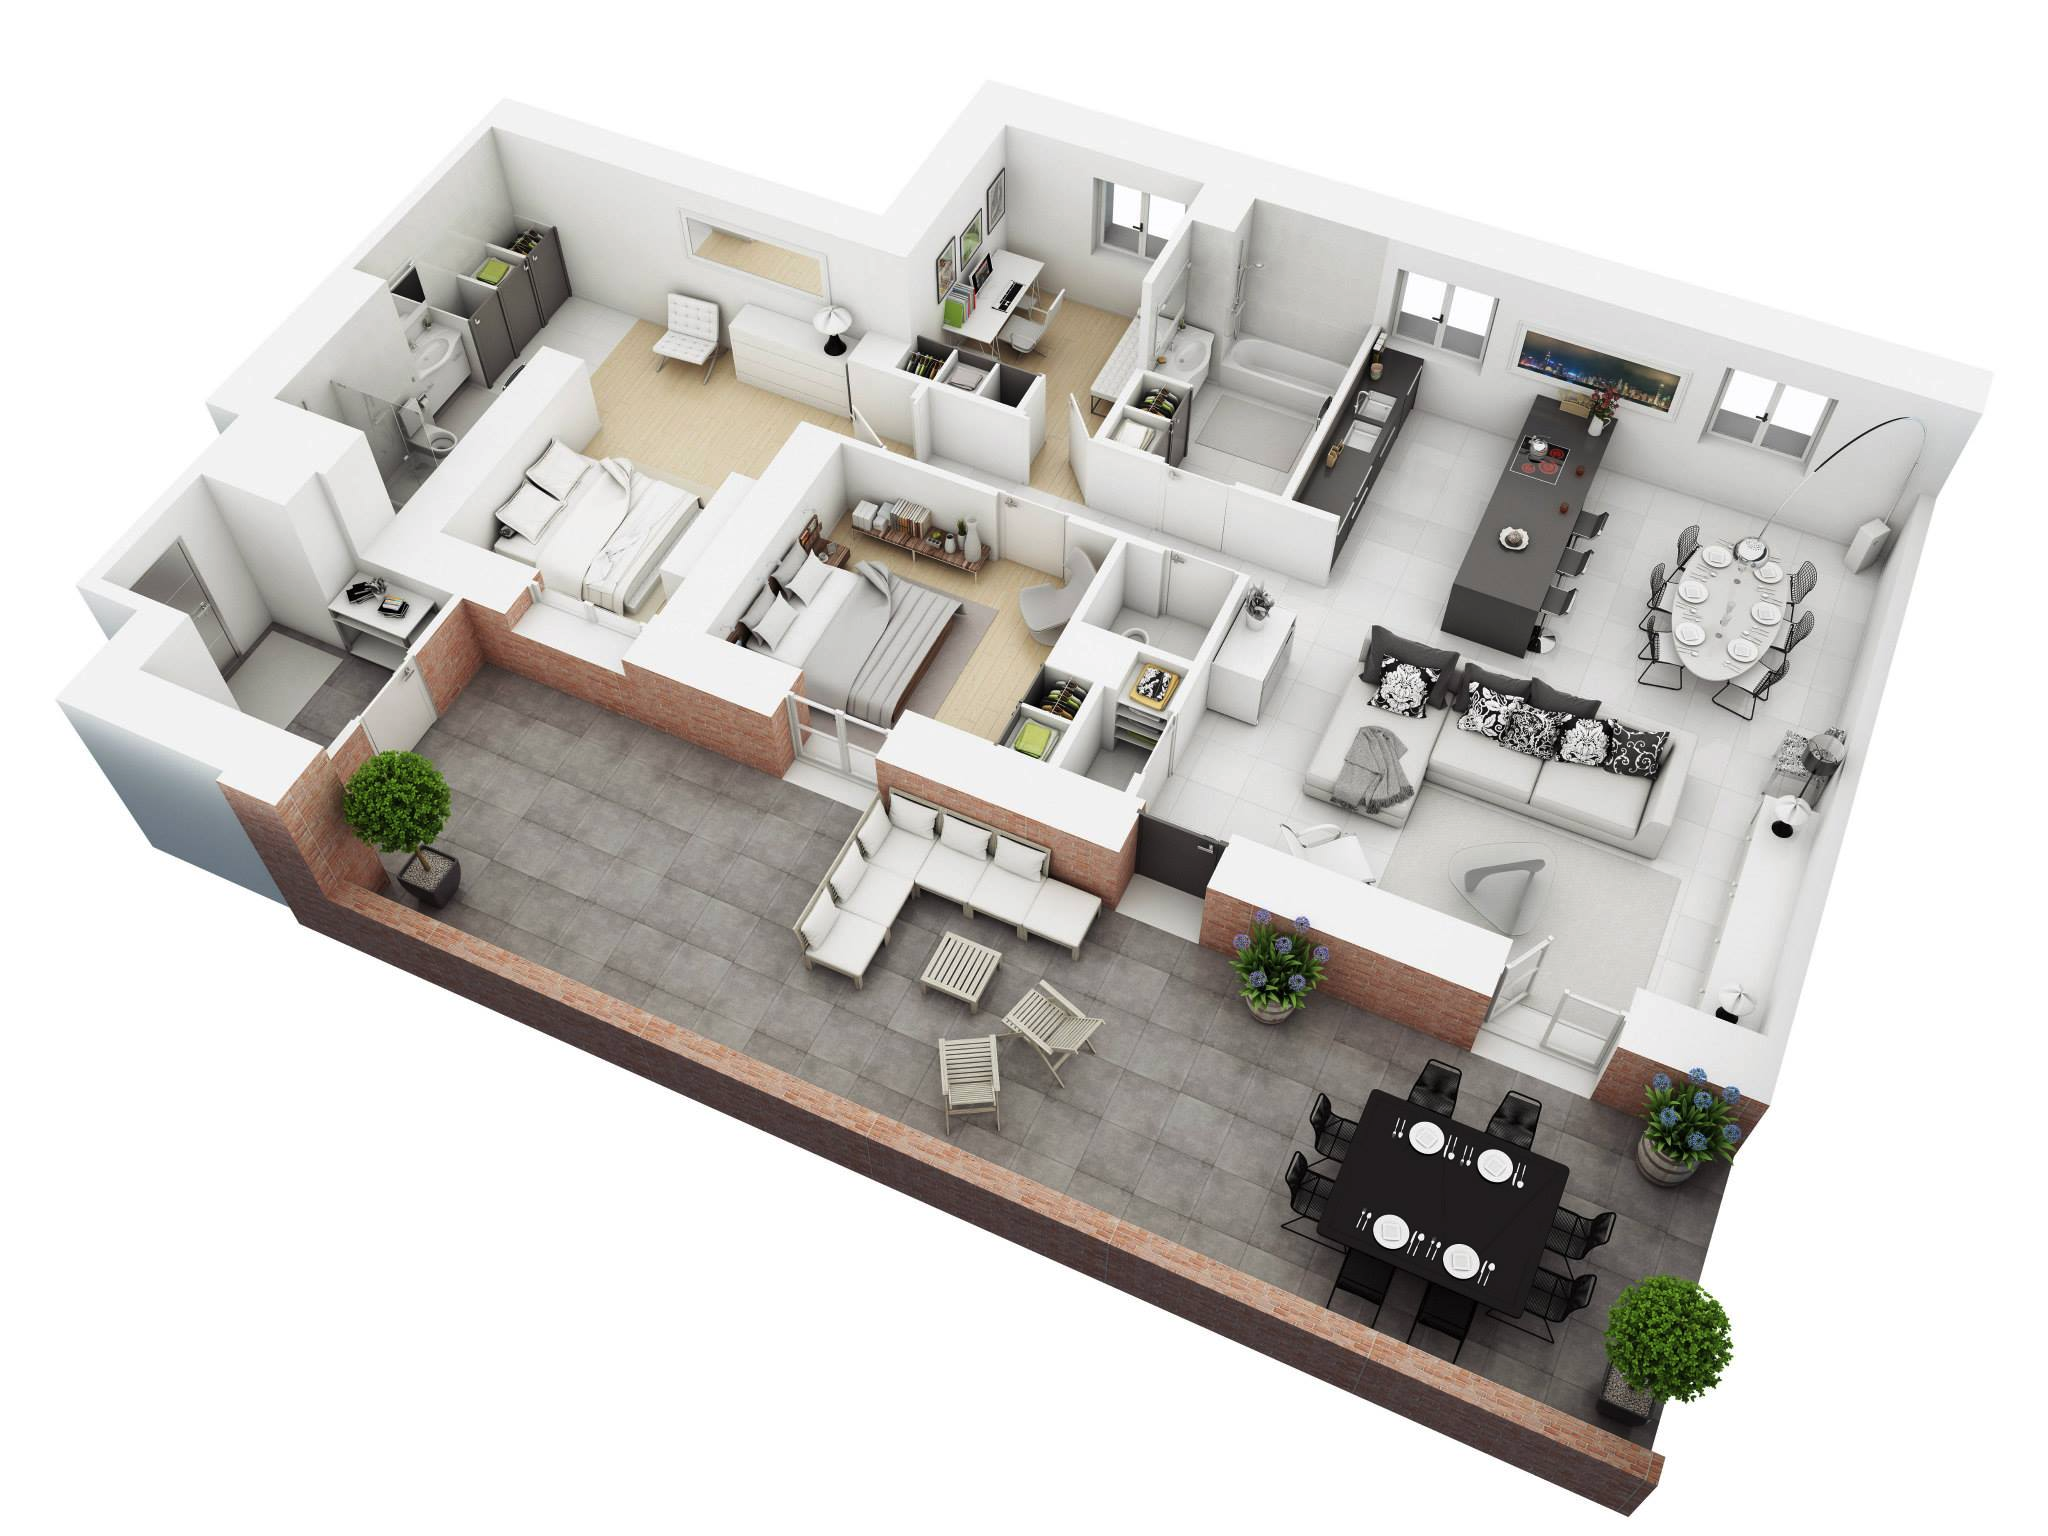 Captivating House Floor Plan 3D Model